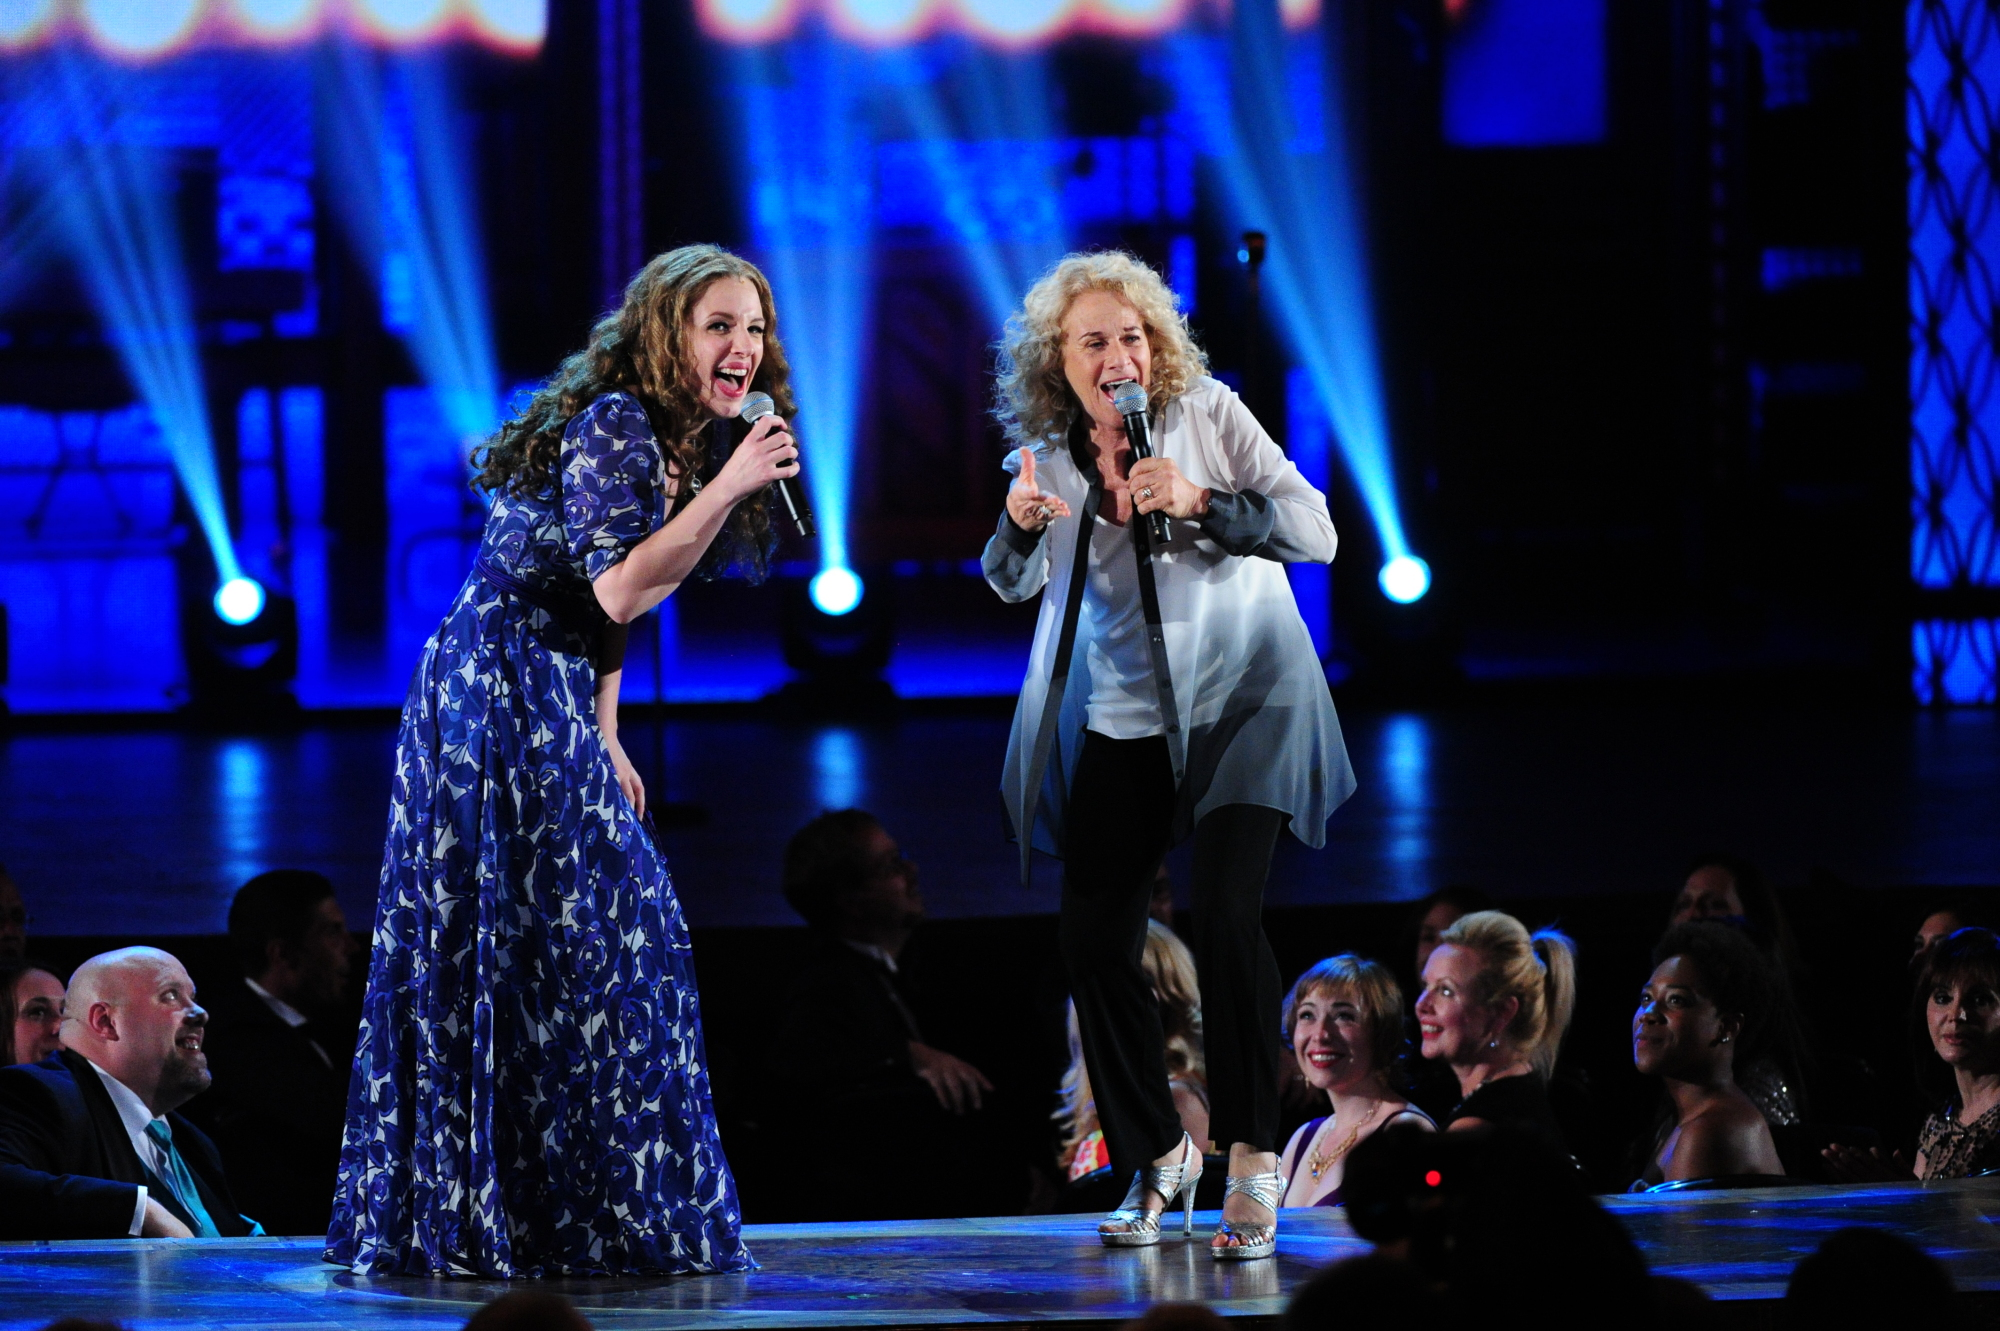 Jessie Mueller and Carole King for Beautiful: The Carole King Musical - 2014 Tony Awards